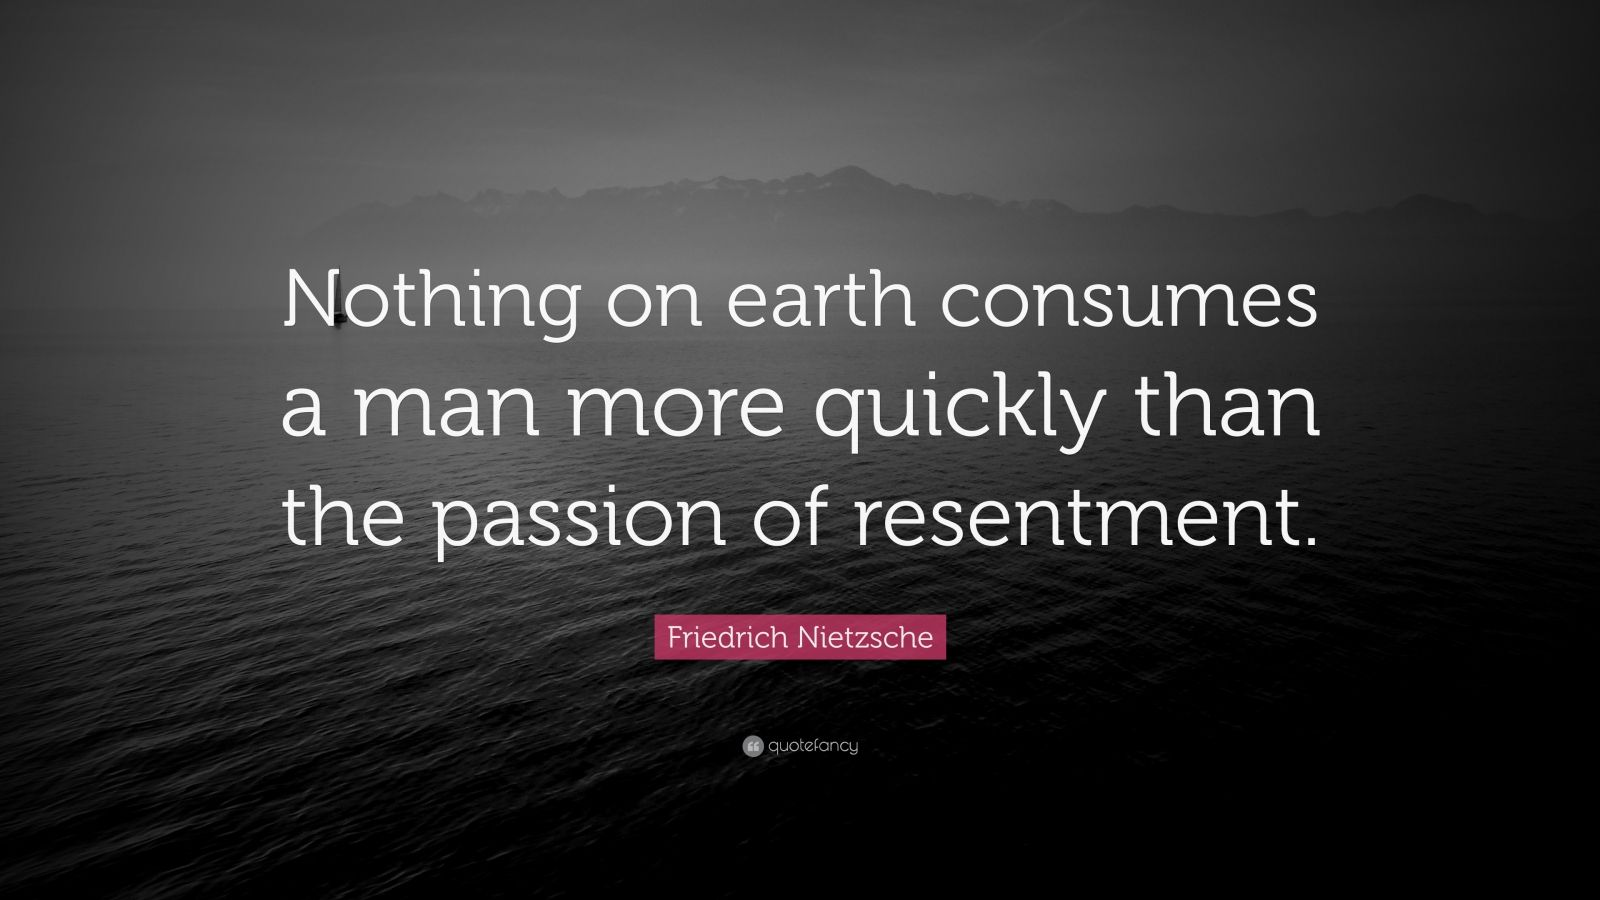 """Friedrich Nietzsche Quote: """"Nothing on earth consumes a man more quickly than the passion of resentment."""""""